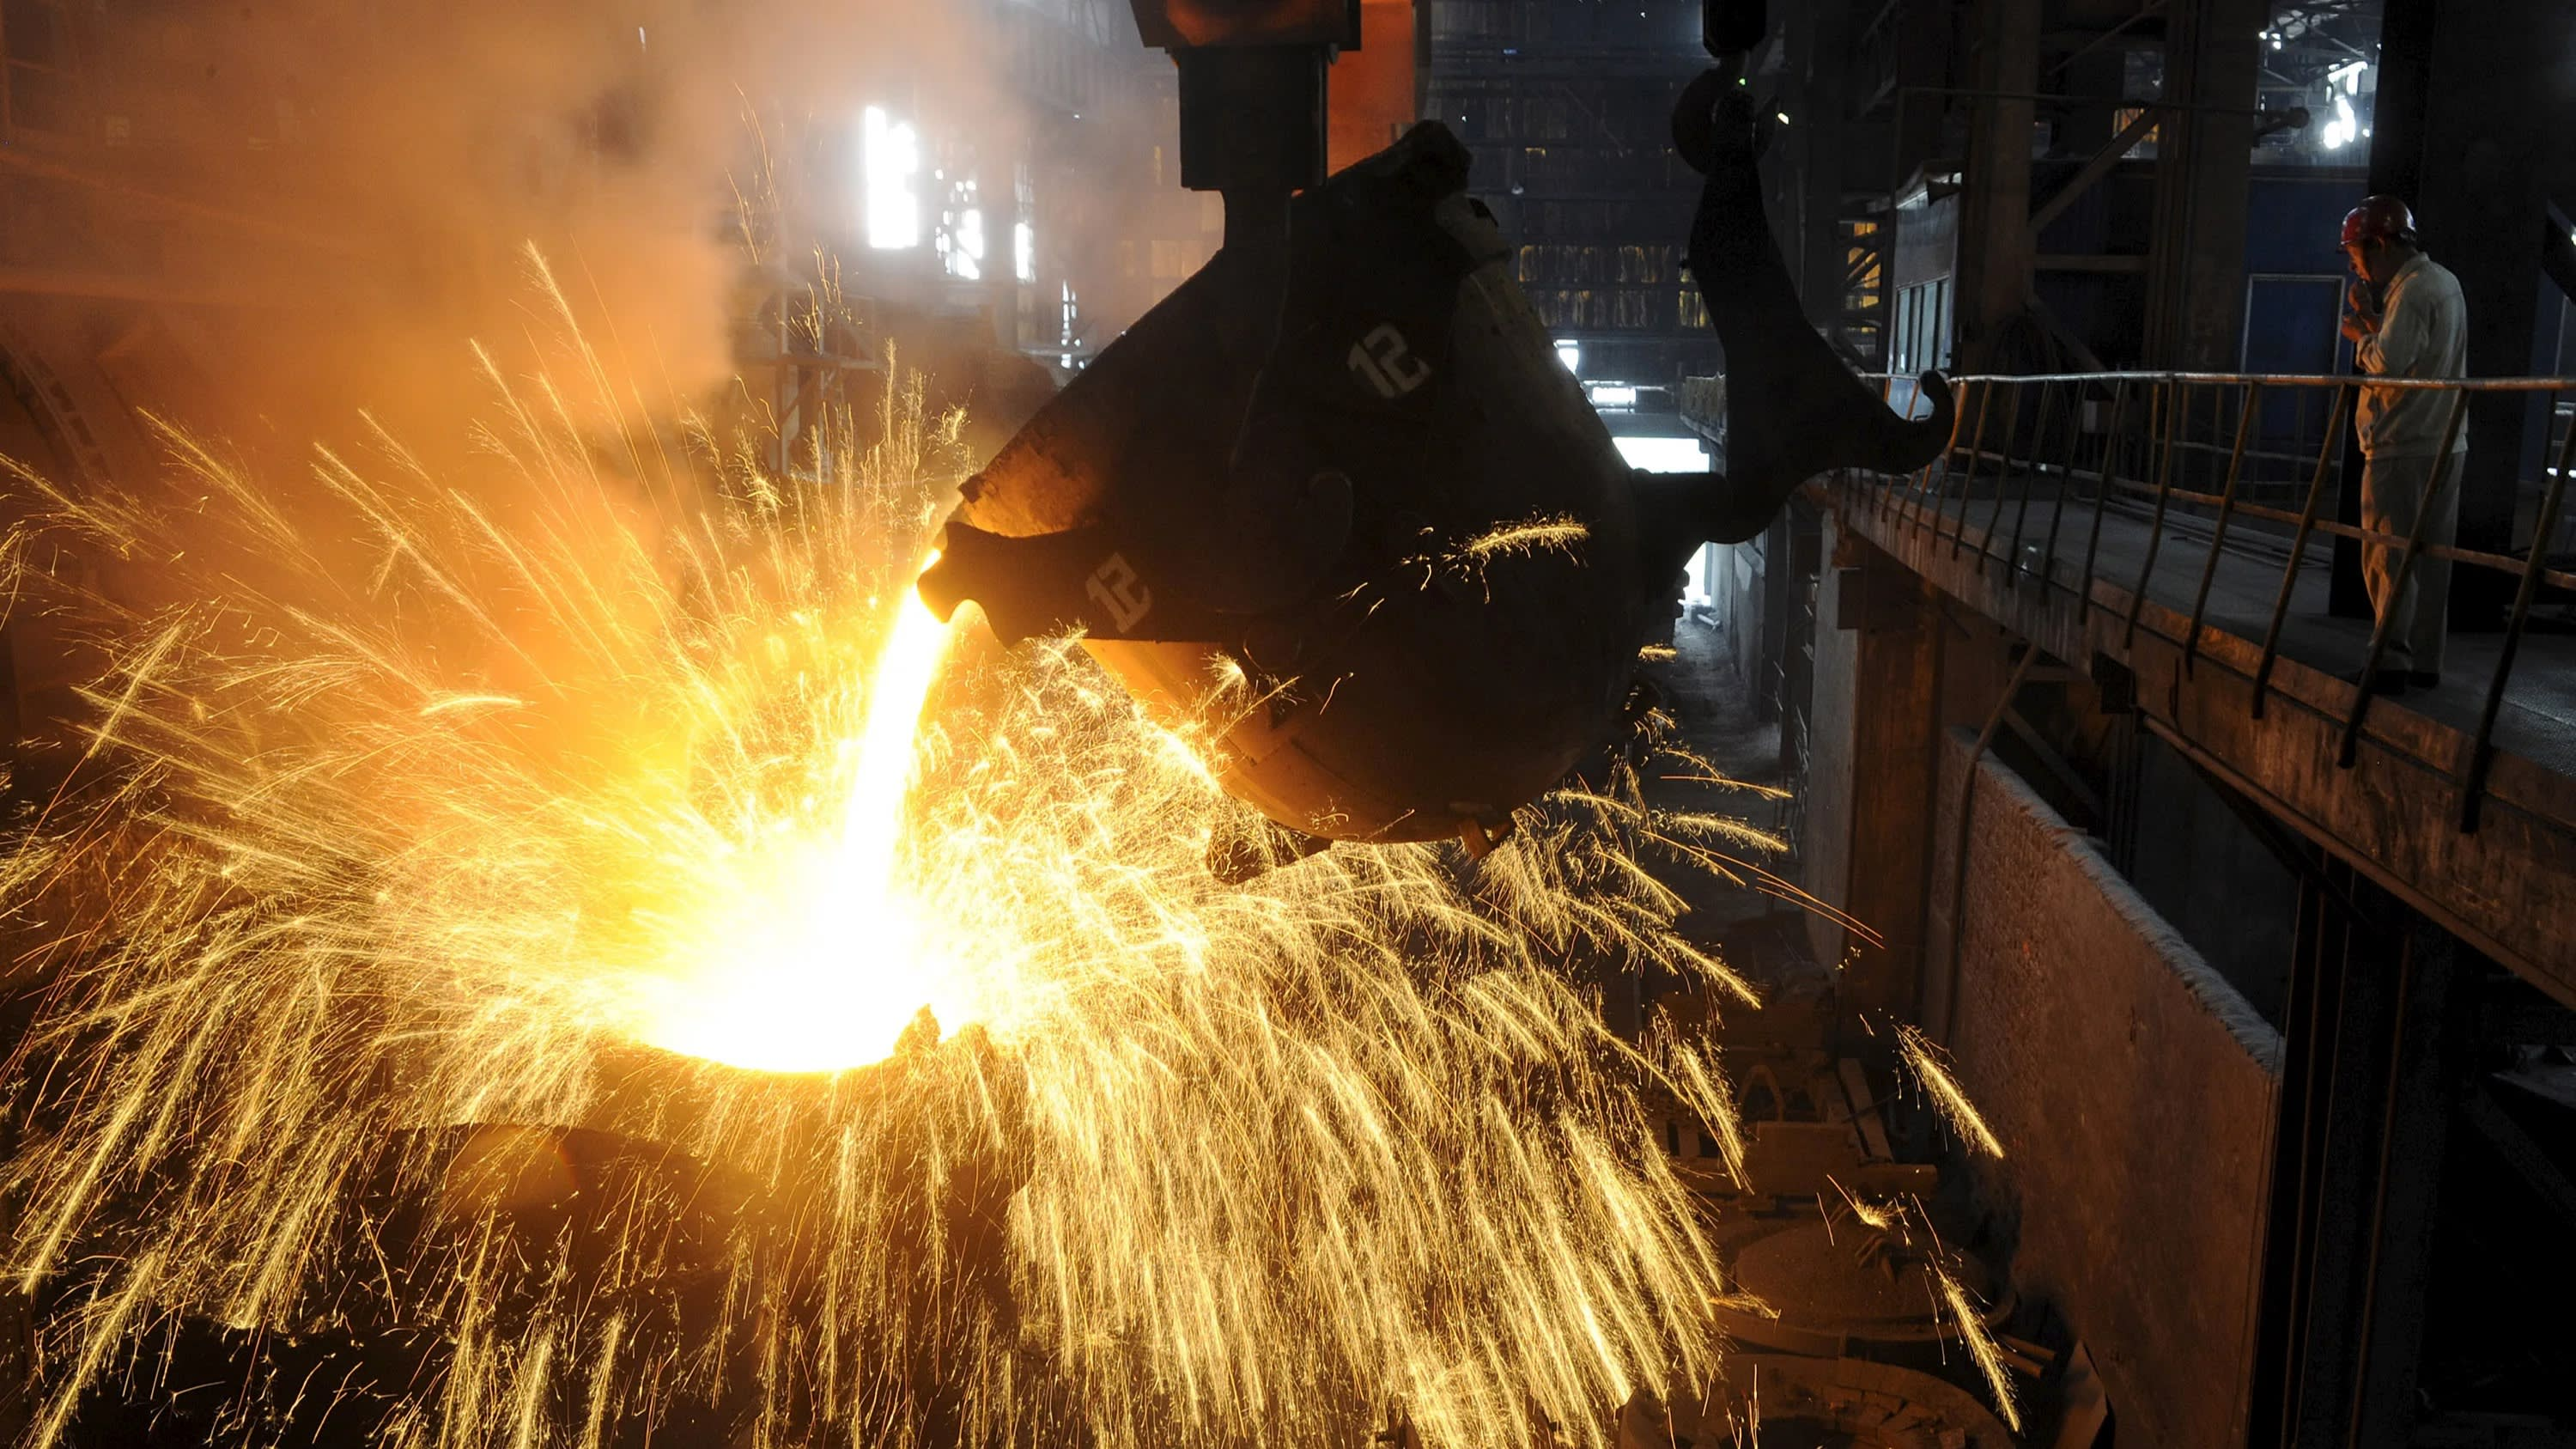 Asia's steel and plastic prices slump as trade war takes toll